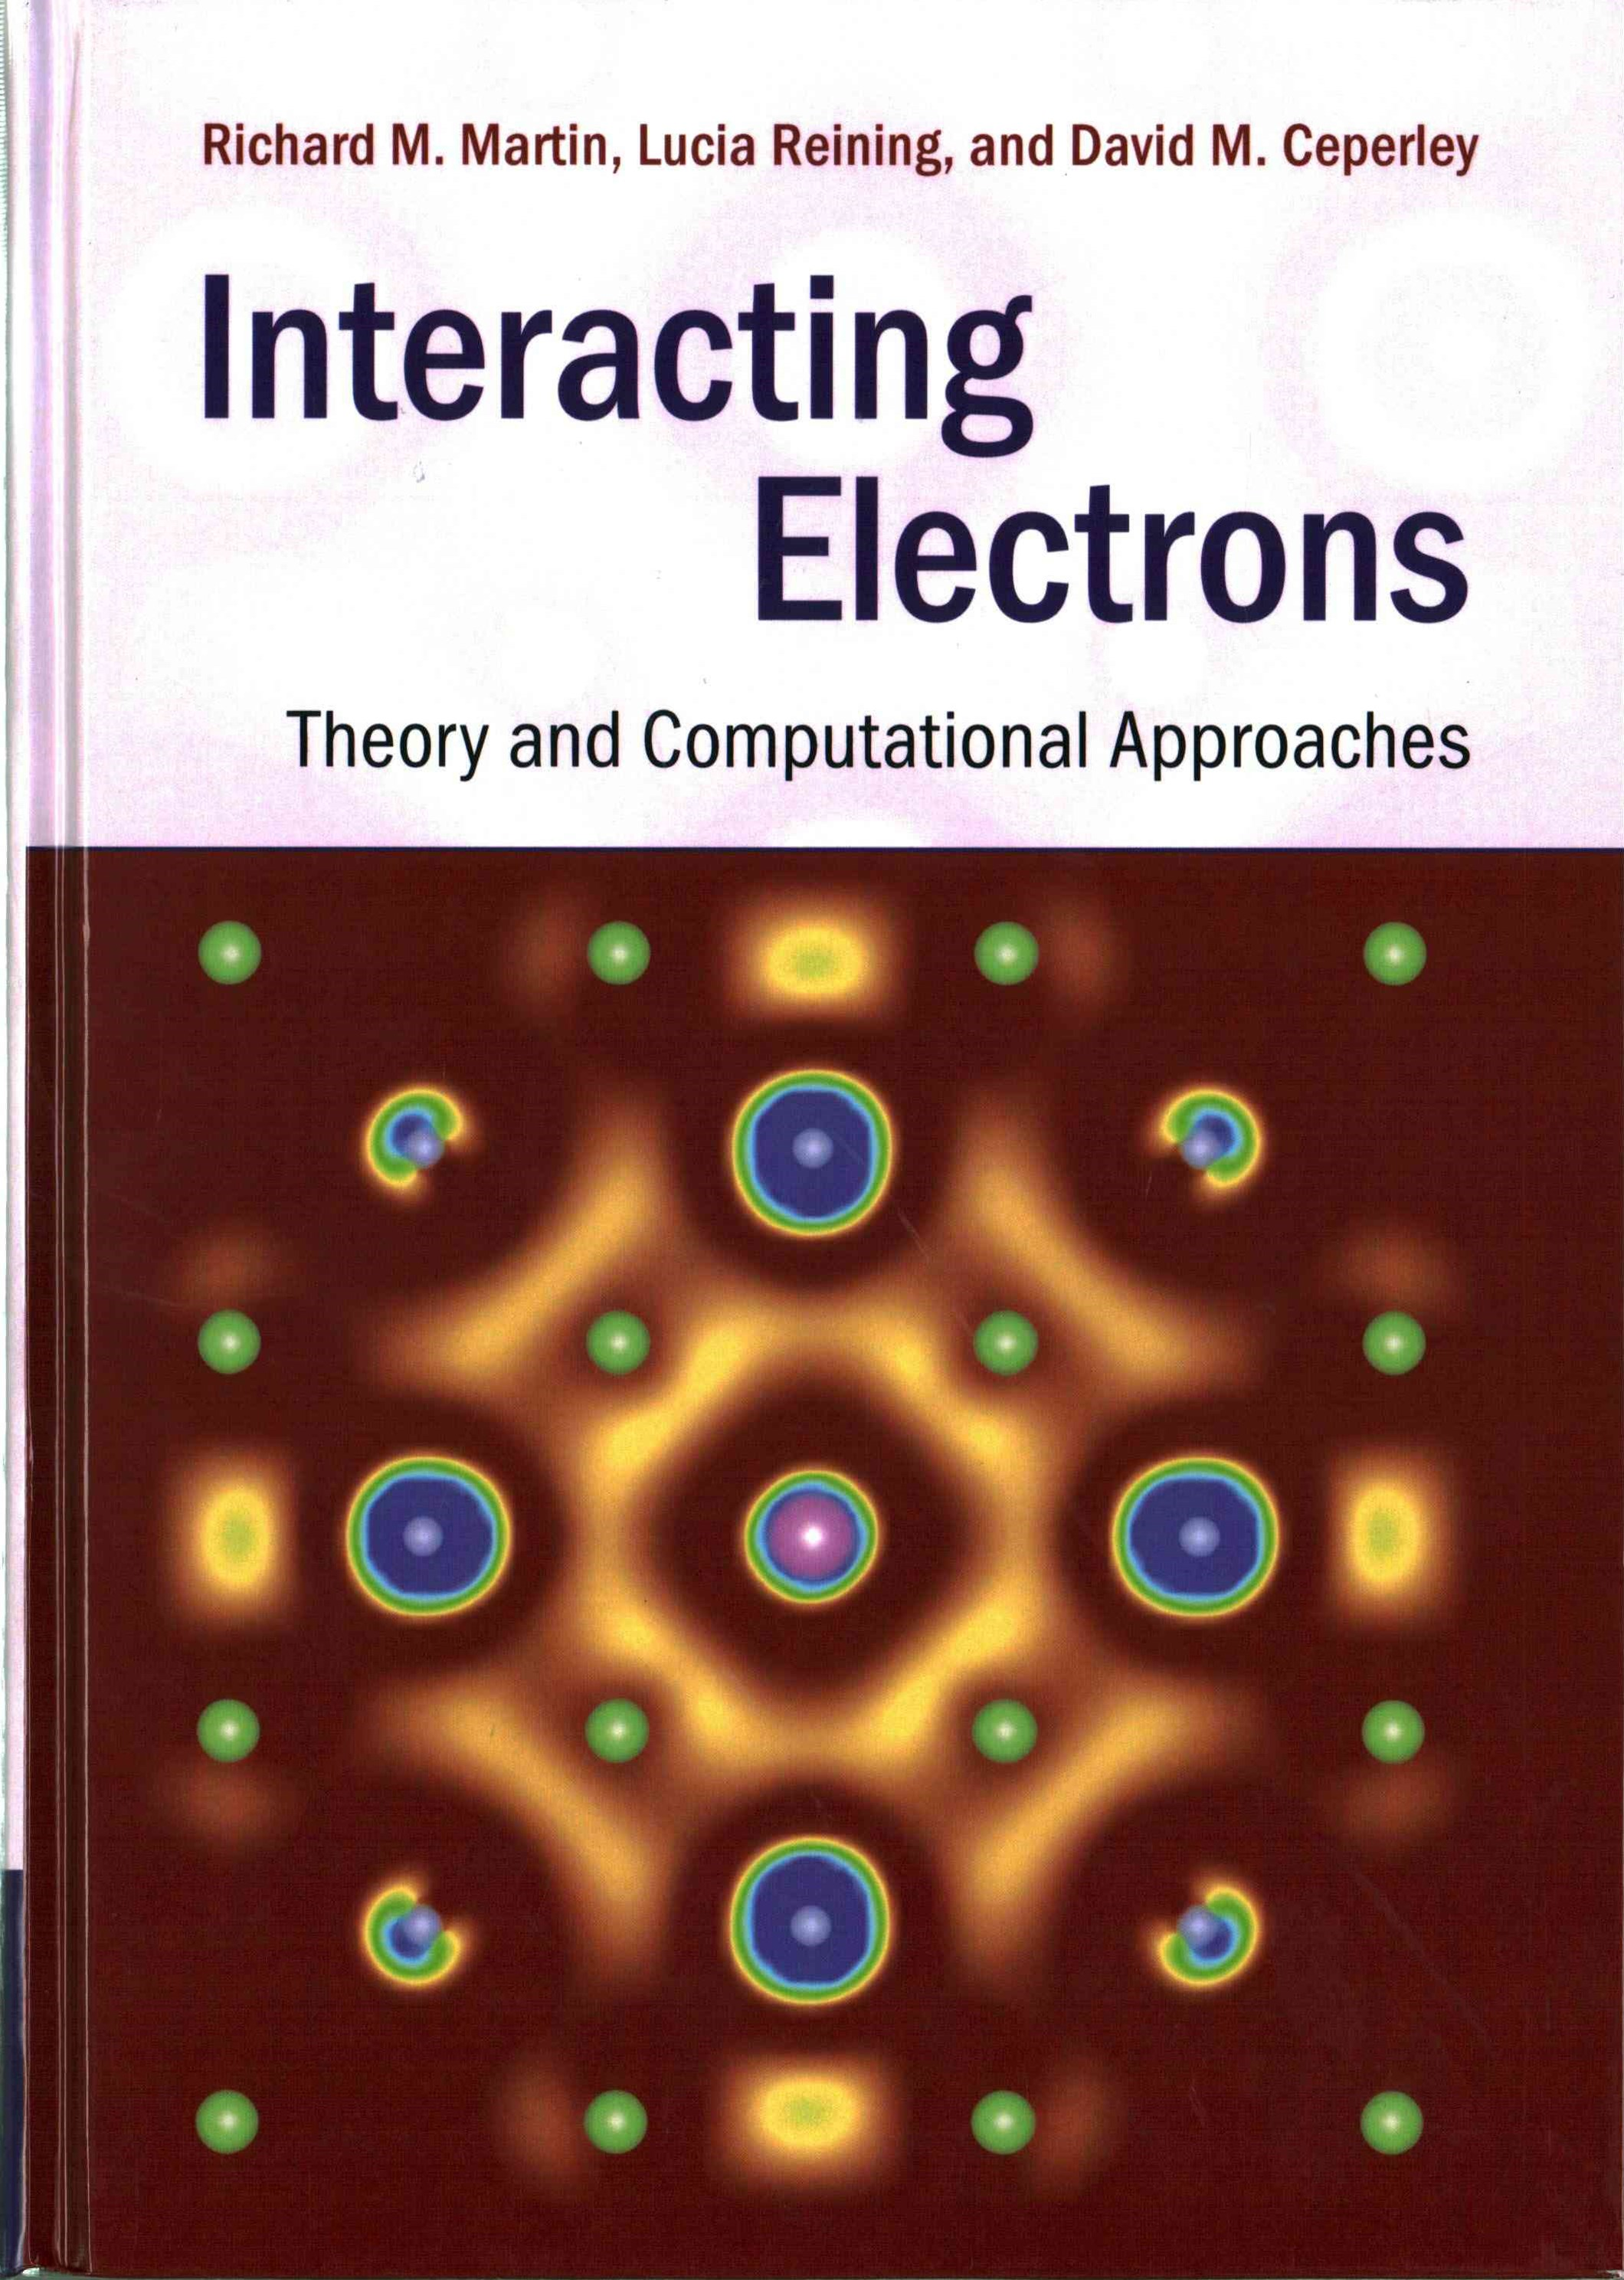 Interacting Electrons